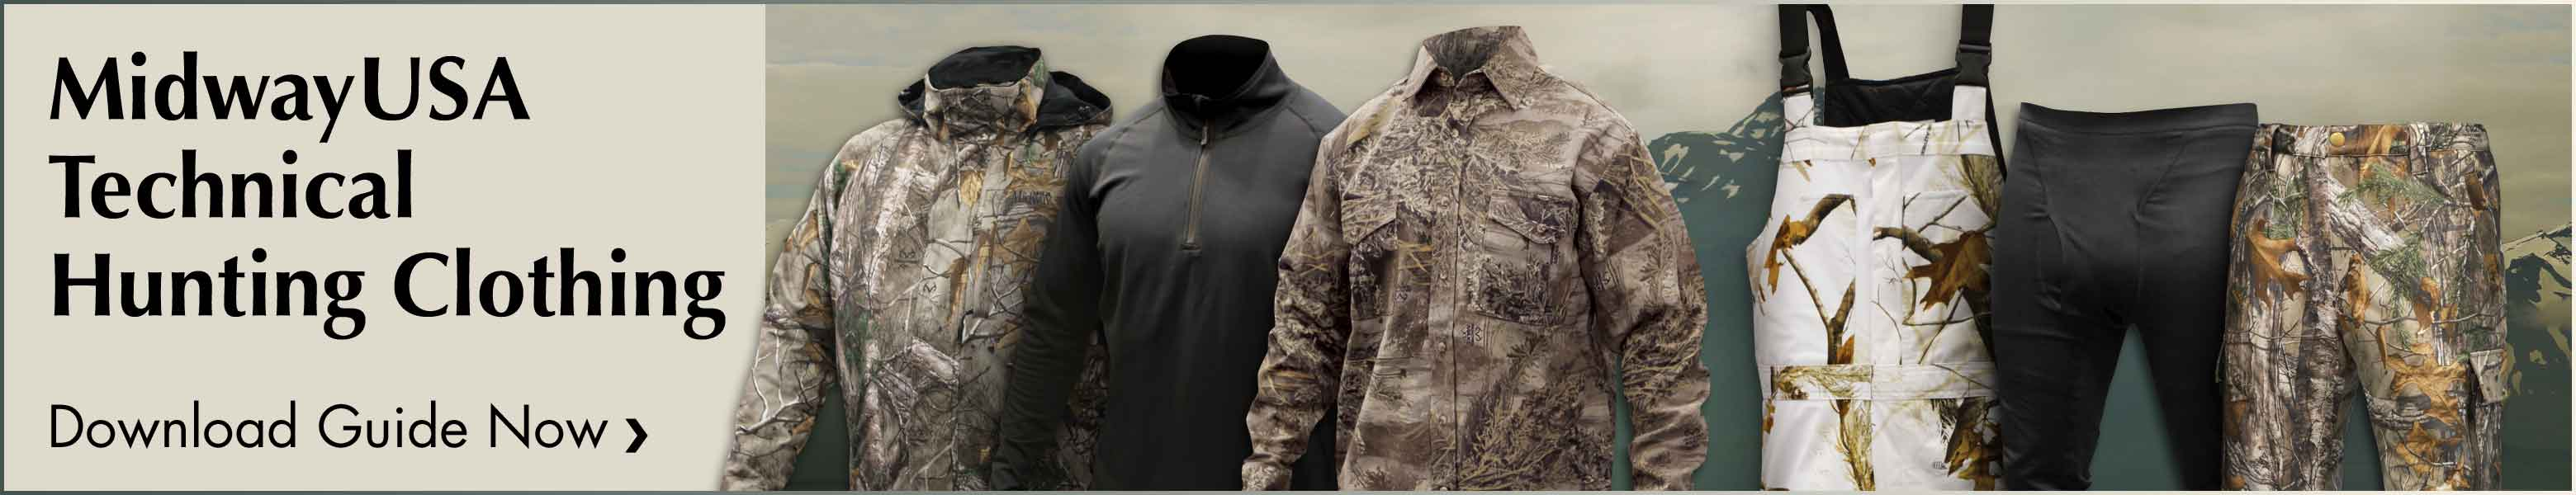 Download the MidwayUSA Technical Hunting Clothing Guide Now